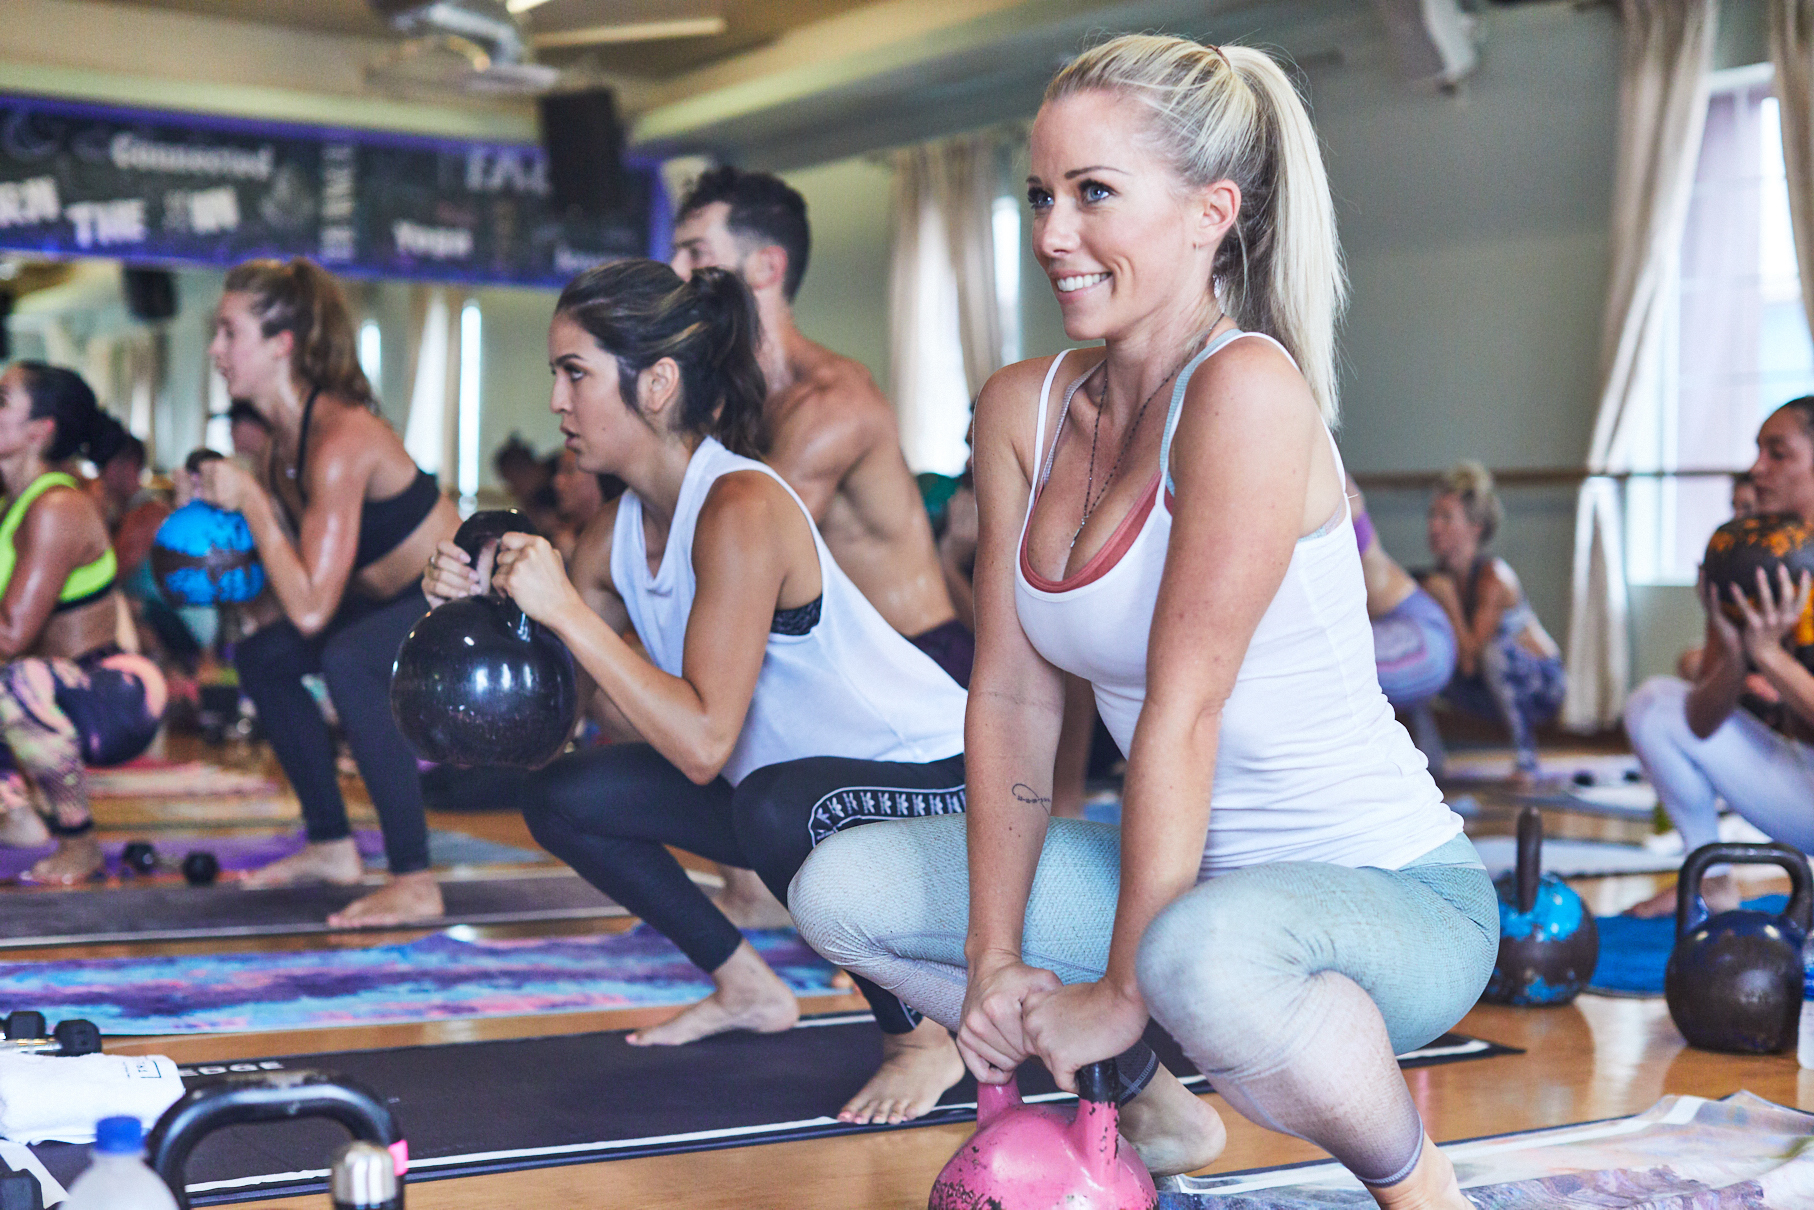 Kendra Wilkinson attends a TruFusion boot camp class with Niyama Sol leggings in Las Vegas on July 25, 2017.